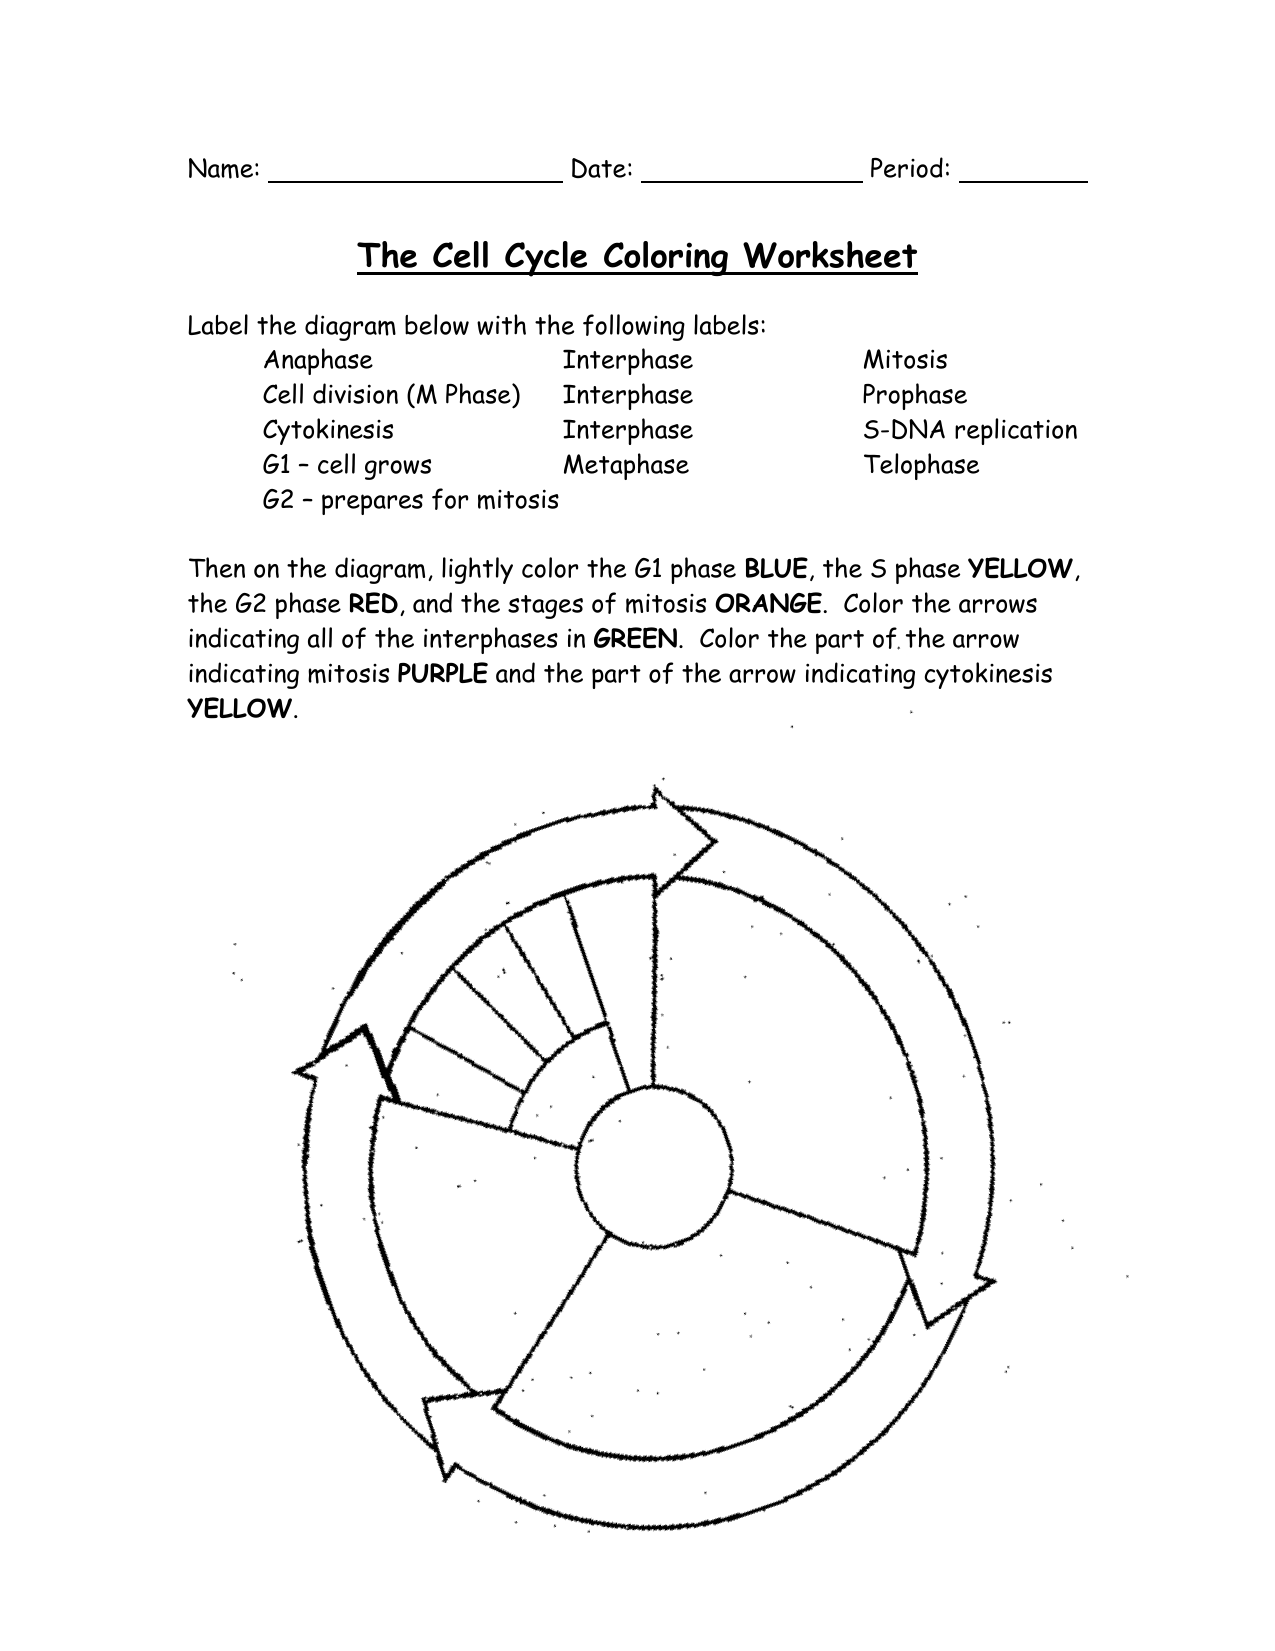 The Cell Cycle Coloring Worksheet Key Deployday – Phases of Mitosis Worksheet